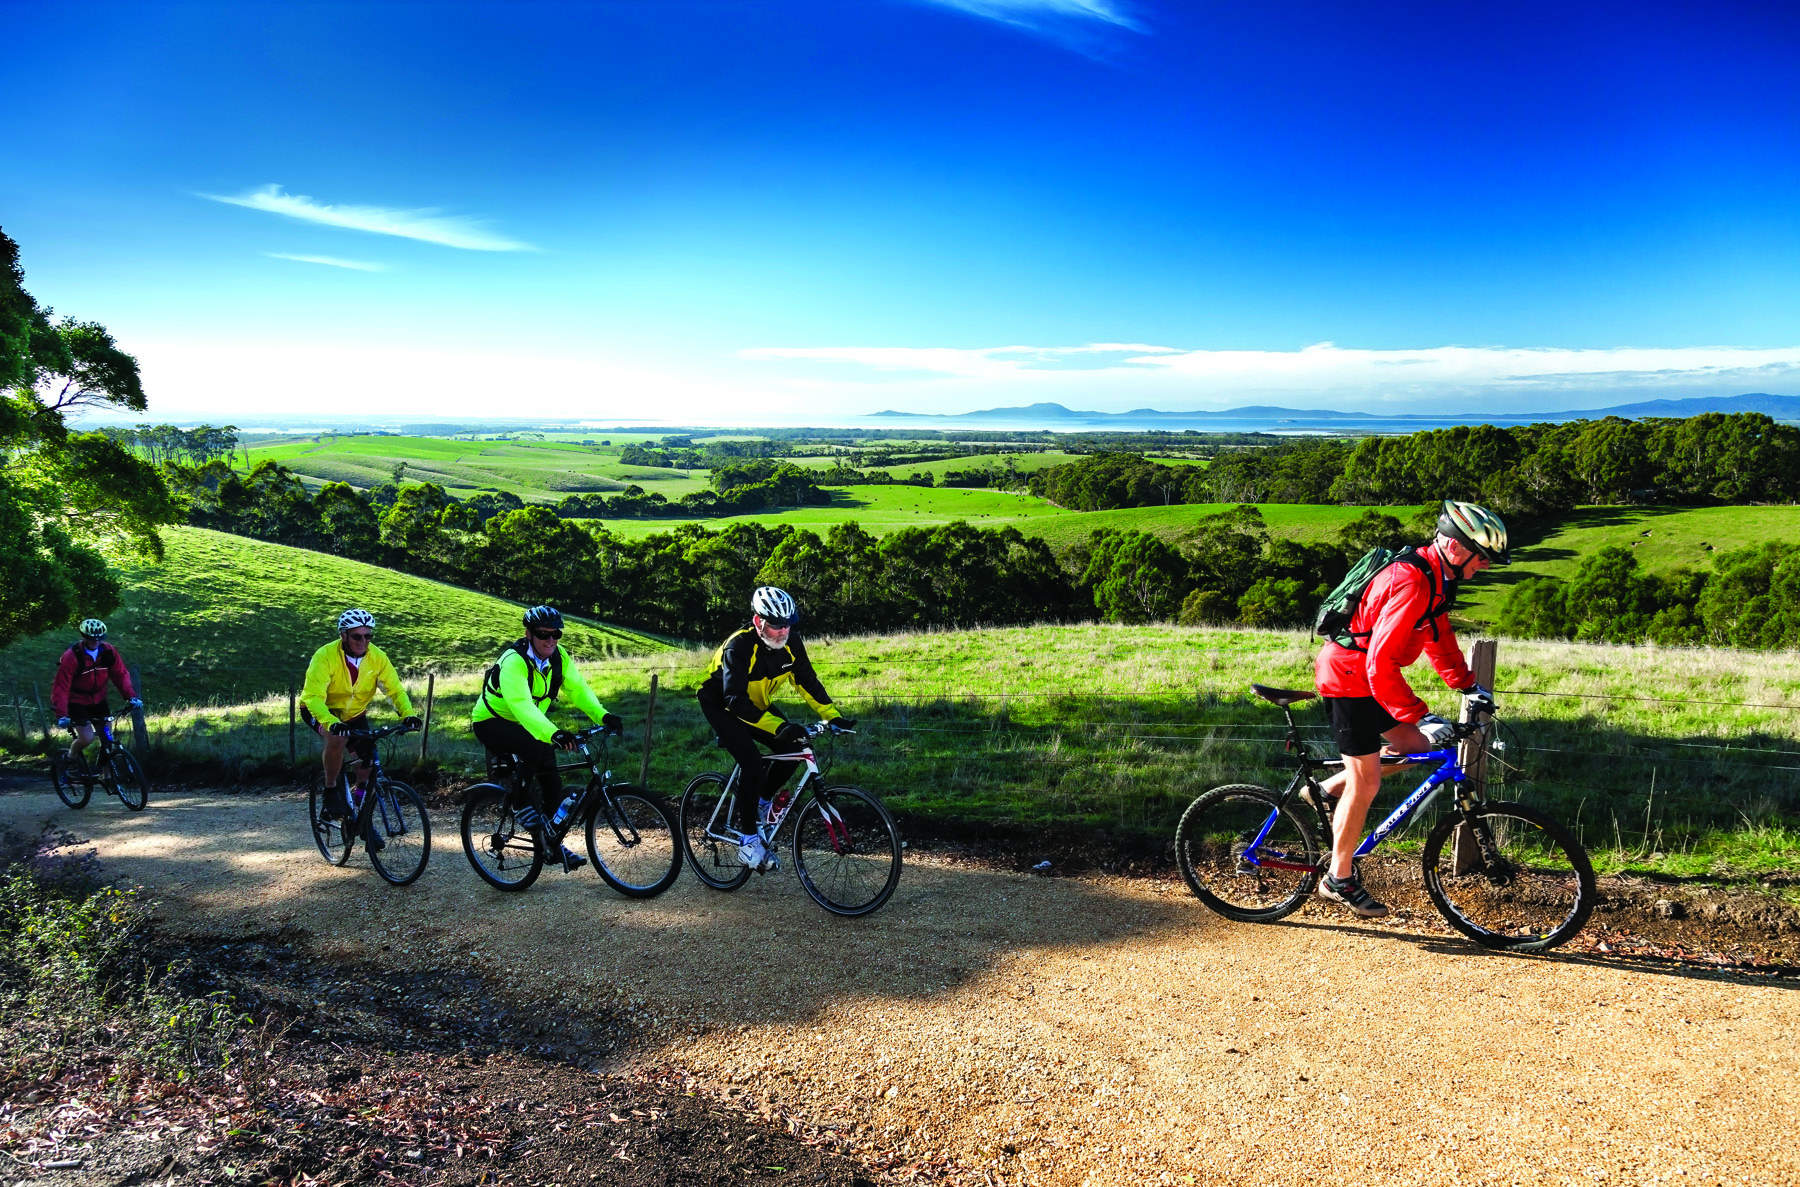 The rolling hills of the Great Southern Rail Trail